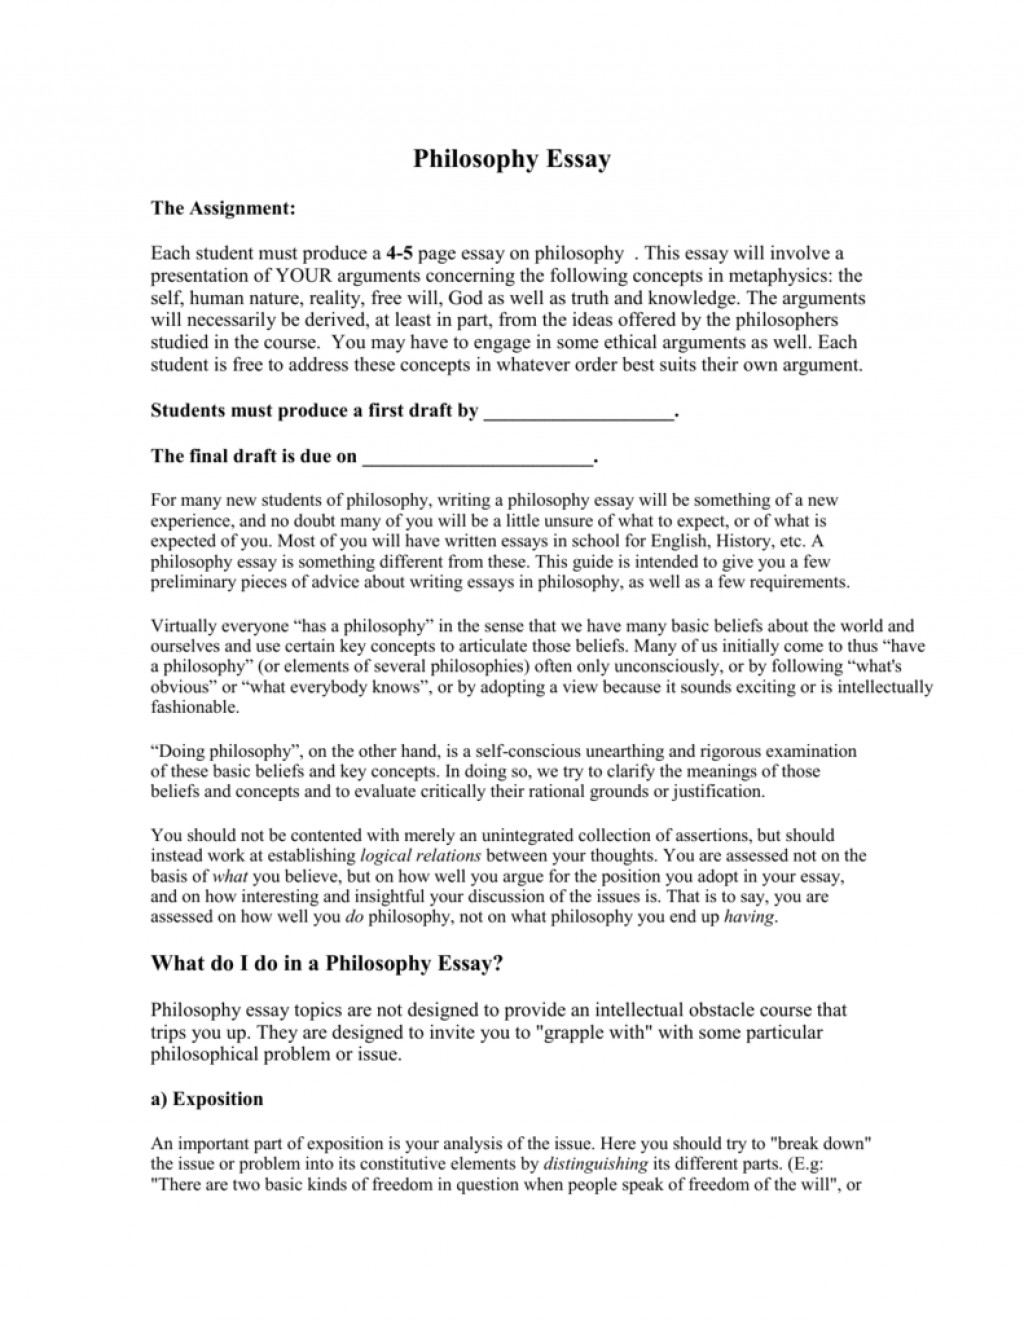 013 Essay Example 007511318 1 Philosophy Frightening Topics Ideas Of Life 101 Questions Large